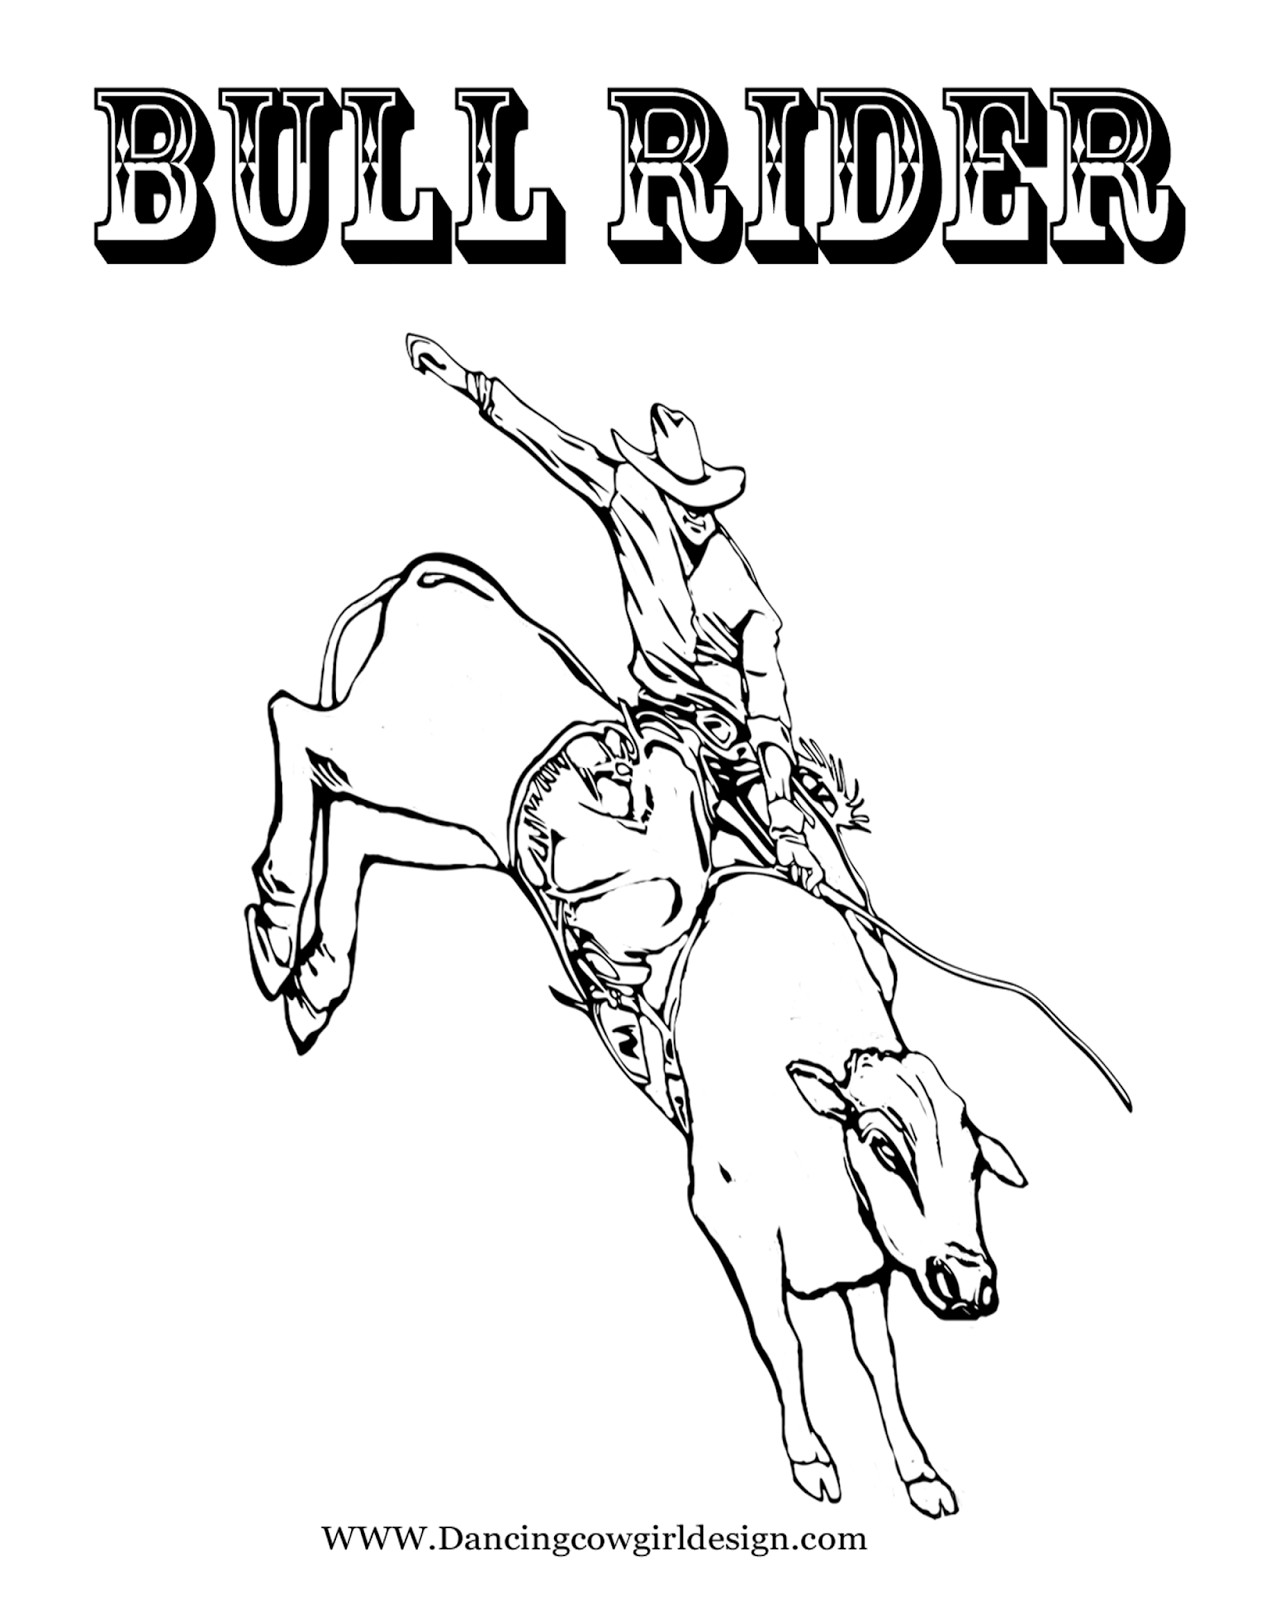 Bull Riding Coloring Pages  RODEO COLORING PAGES Bull Rider Coloring Sheet 2